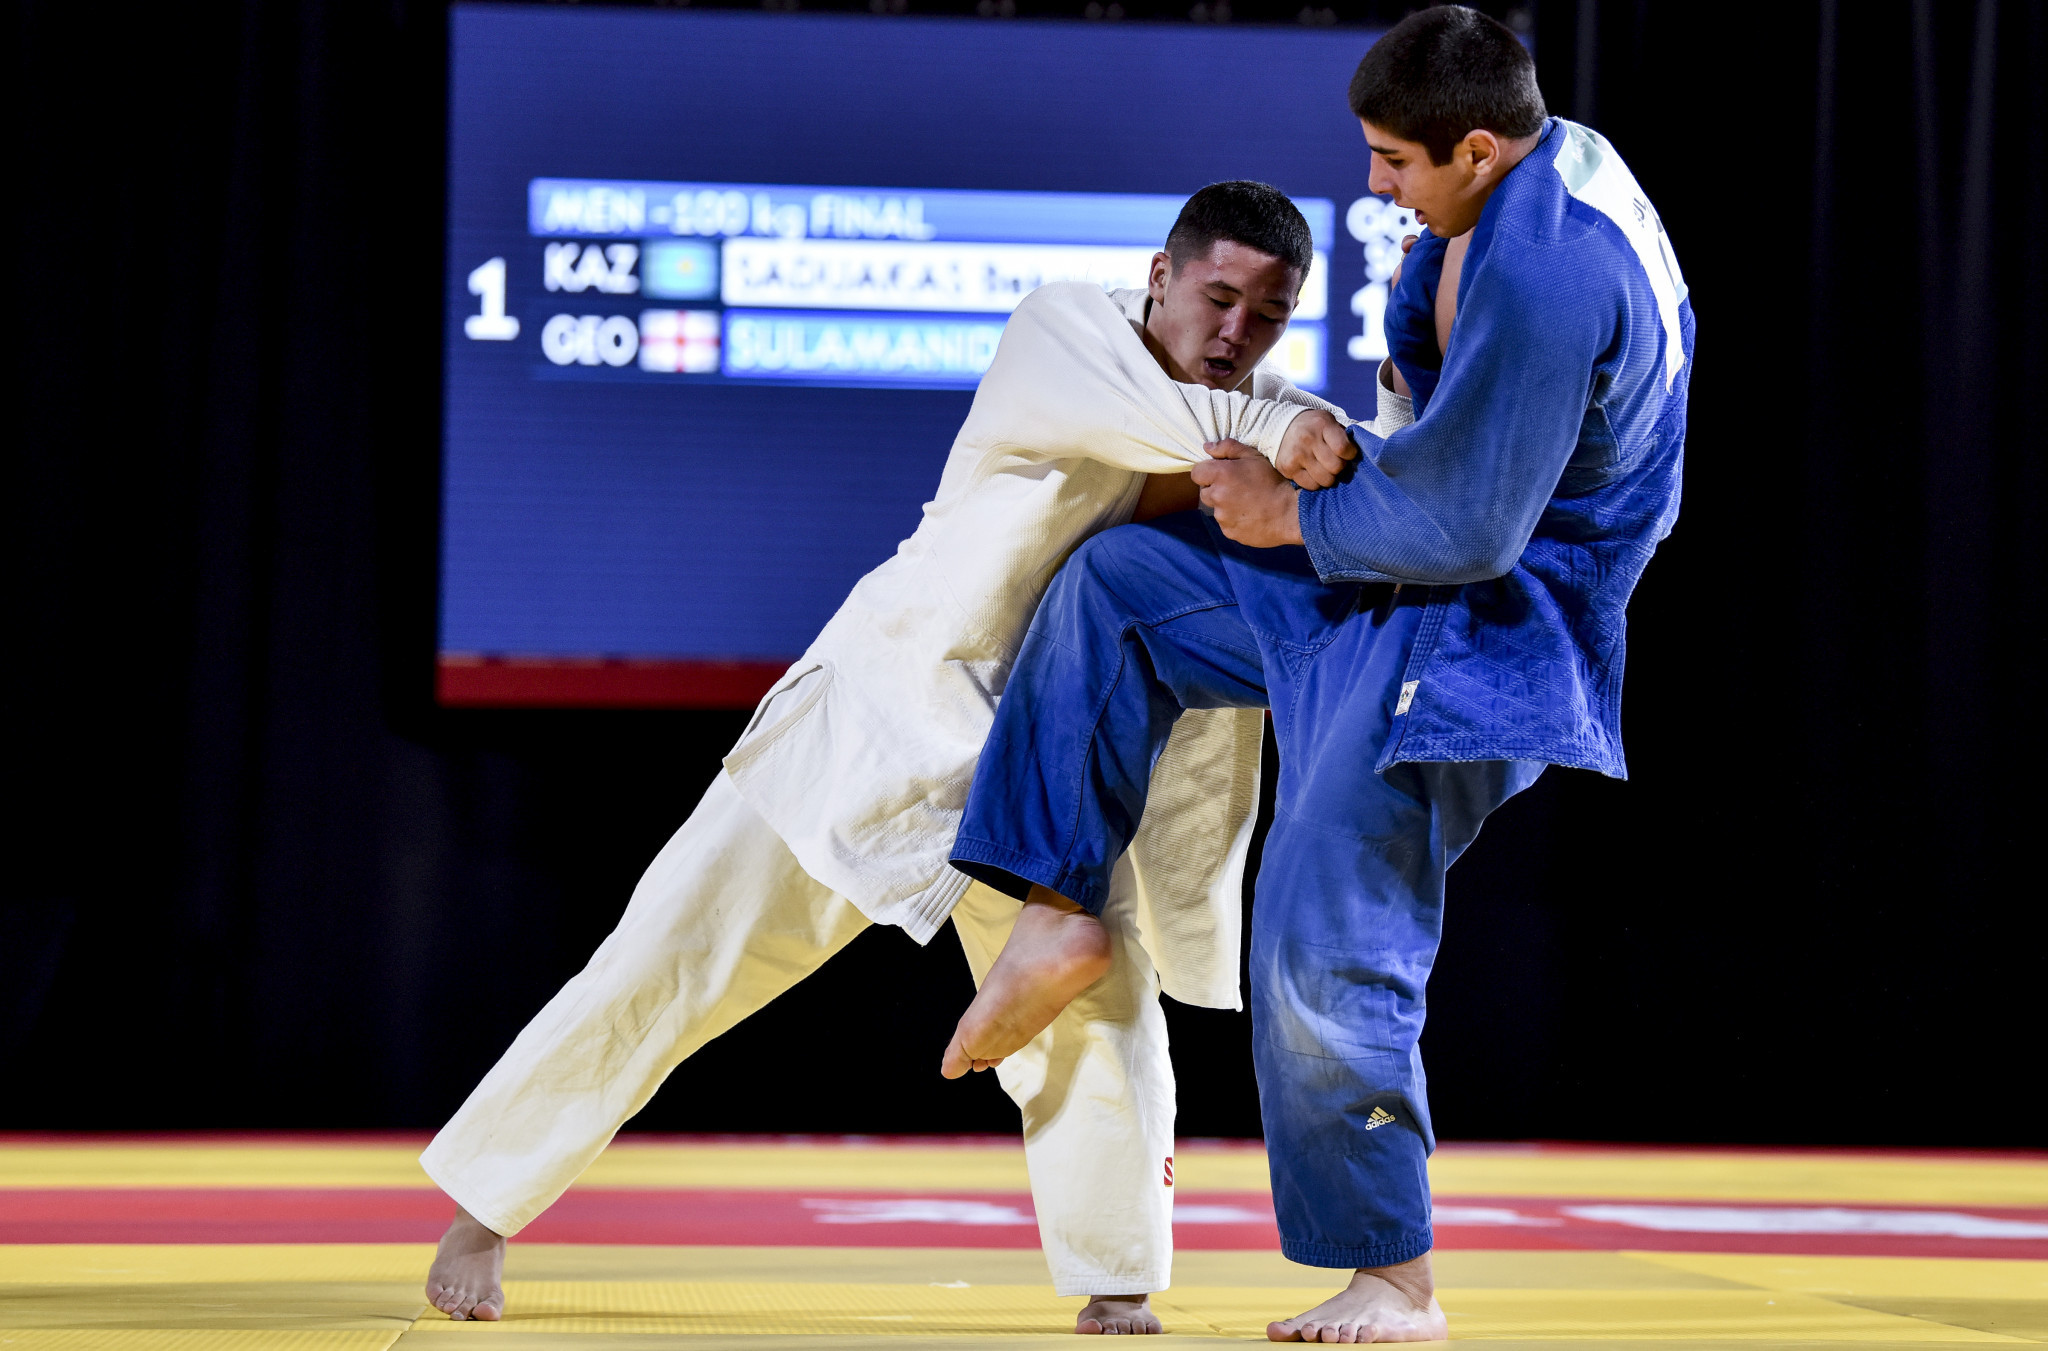 IOC Session and day three of competition at Buenos Aires 2018